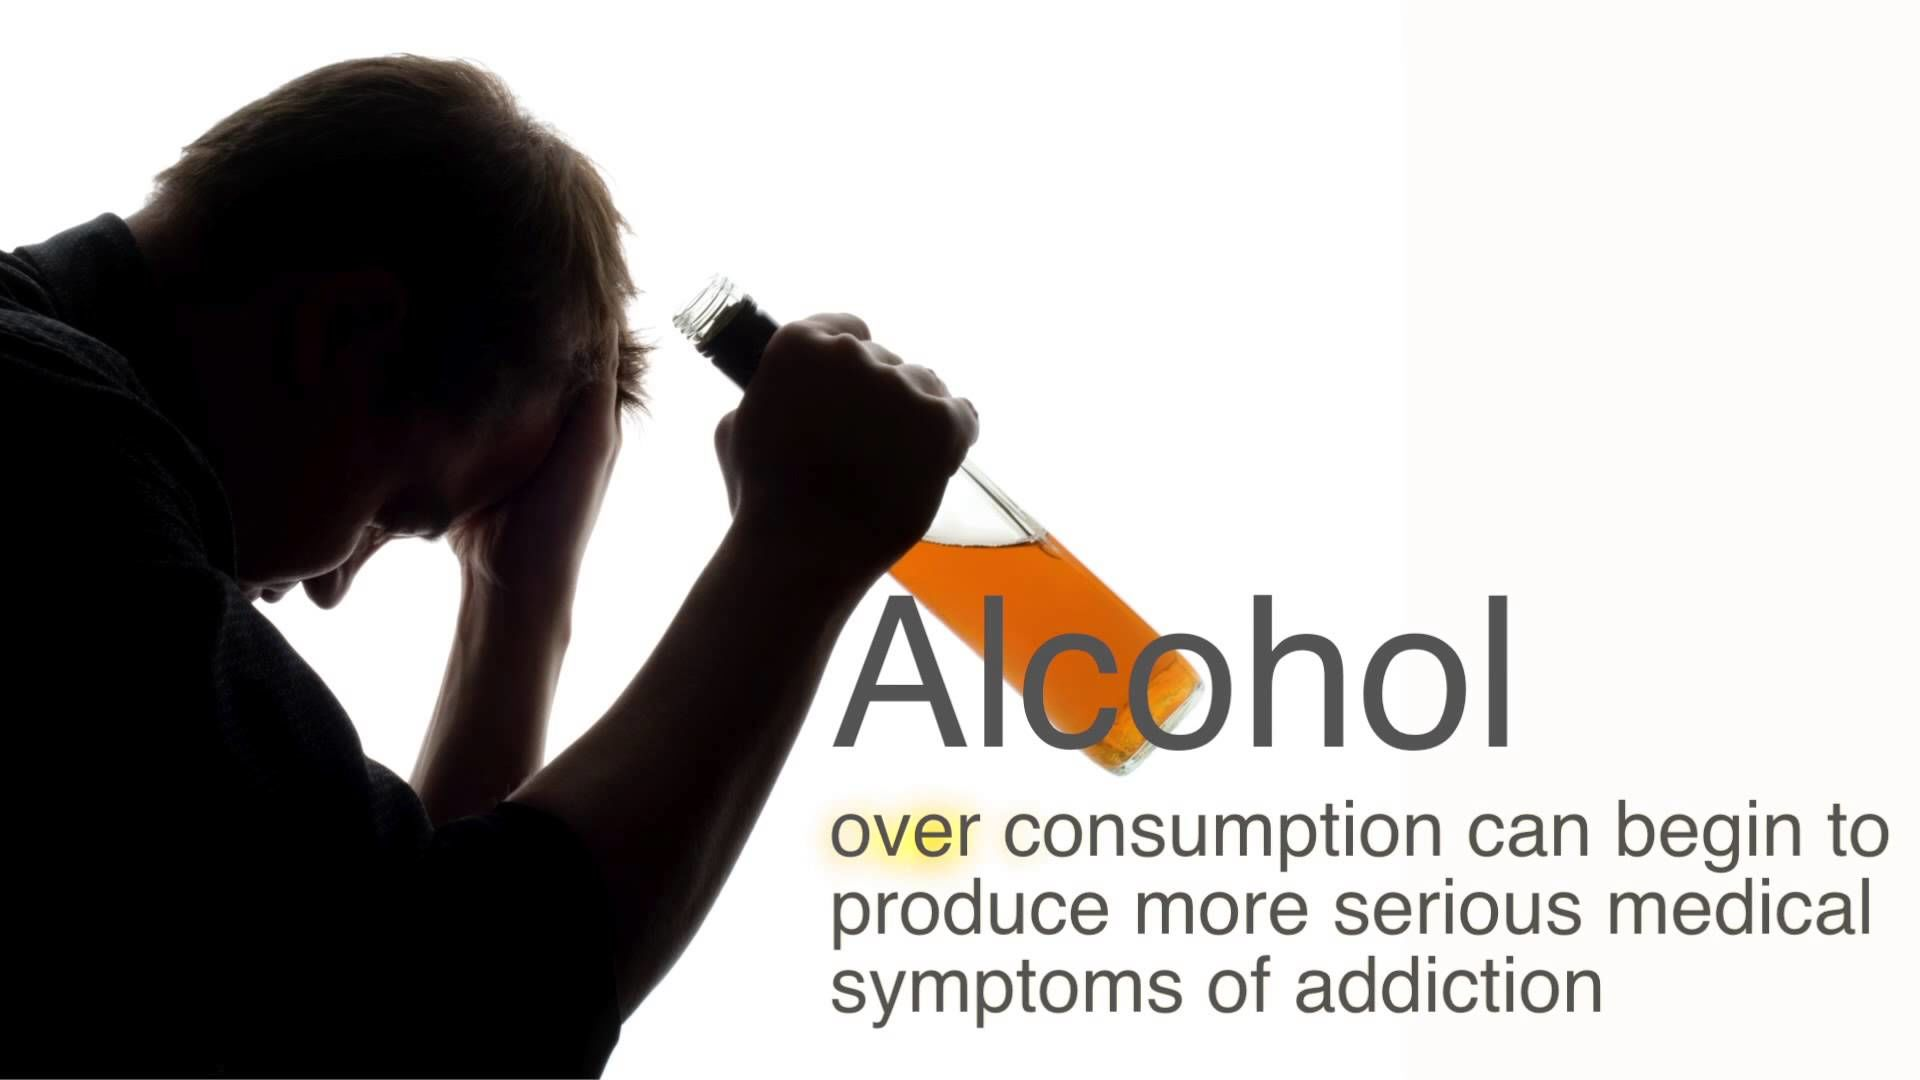 cost of alcoholism The social impact of alcohol abuse is a separate issue from the financial costs involved, and that impact begins in the home, extends into the community, and often affects society as a whole, much like the financial impact does.